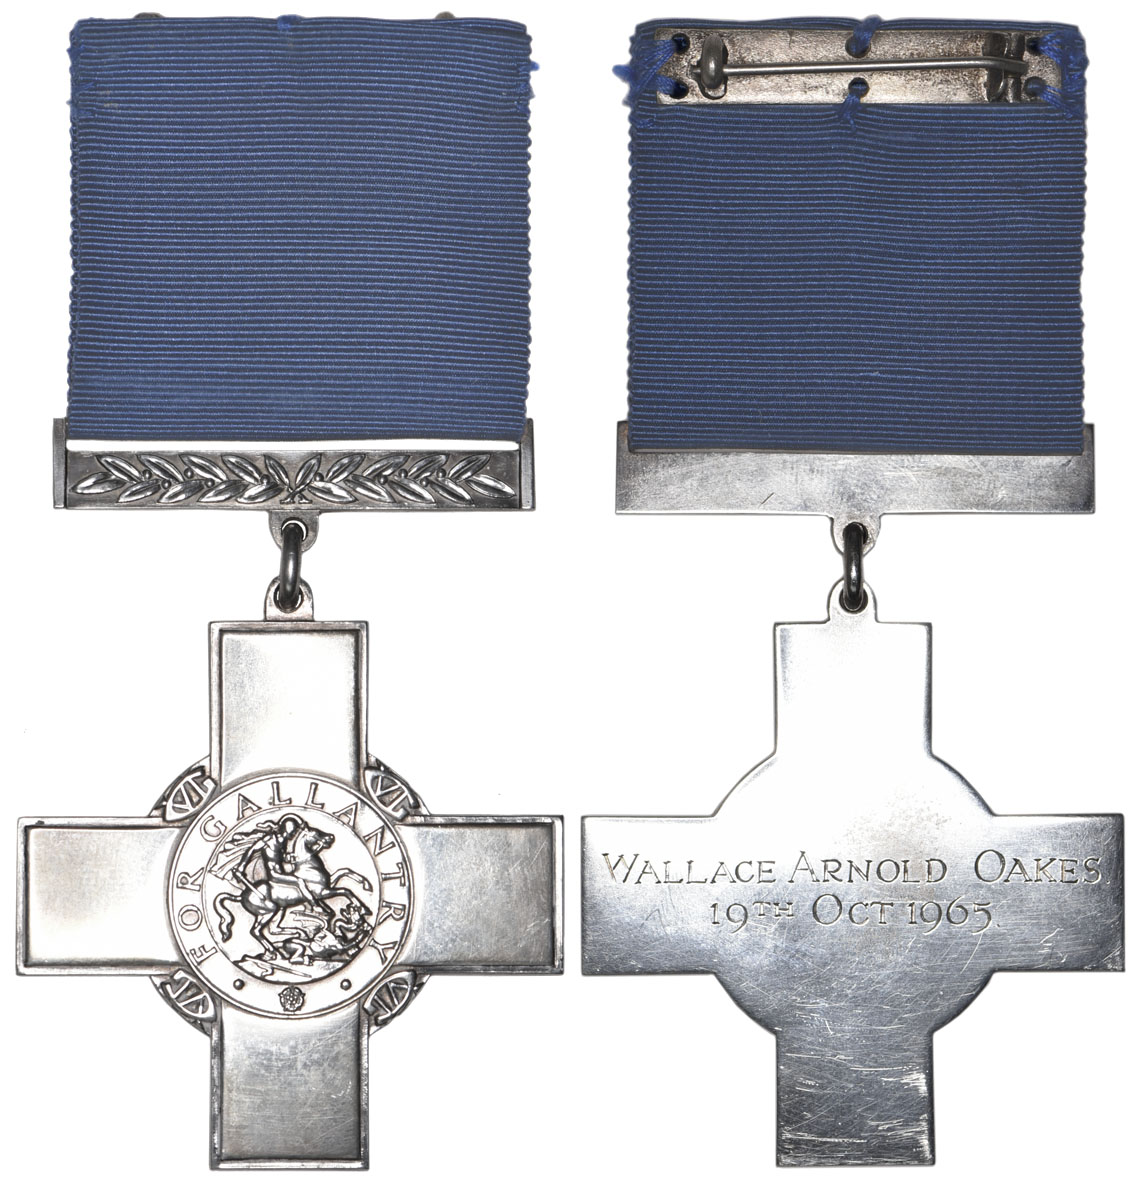 The George Cross medal awarded posthumously to Wallace Arnold Oakes on October 19 1965 for his act of heroism in bringing his train safely to a halt after suffering a severe blowback. It is now owned by the NRM and will go on public display. NRM